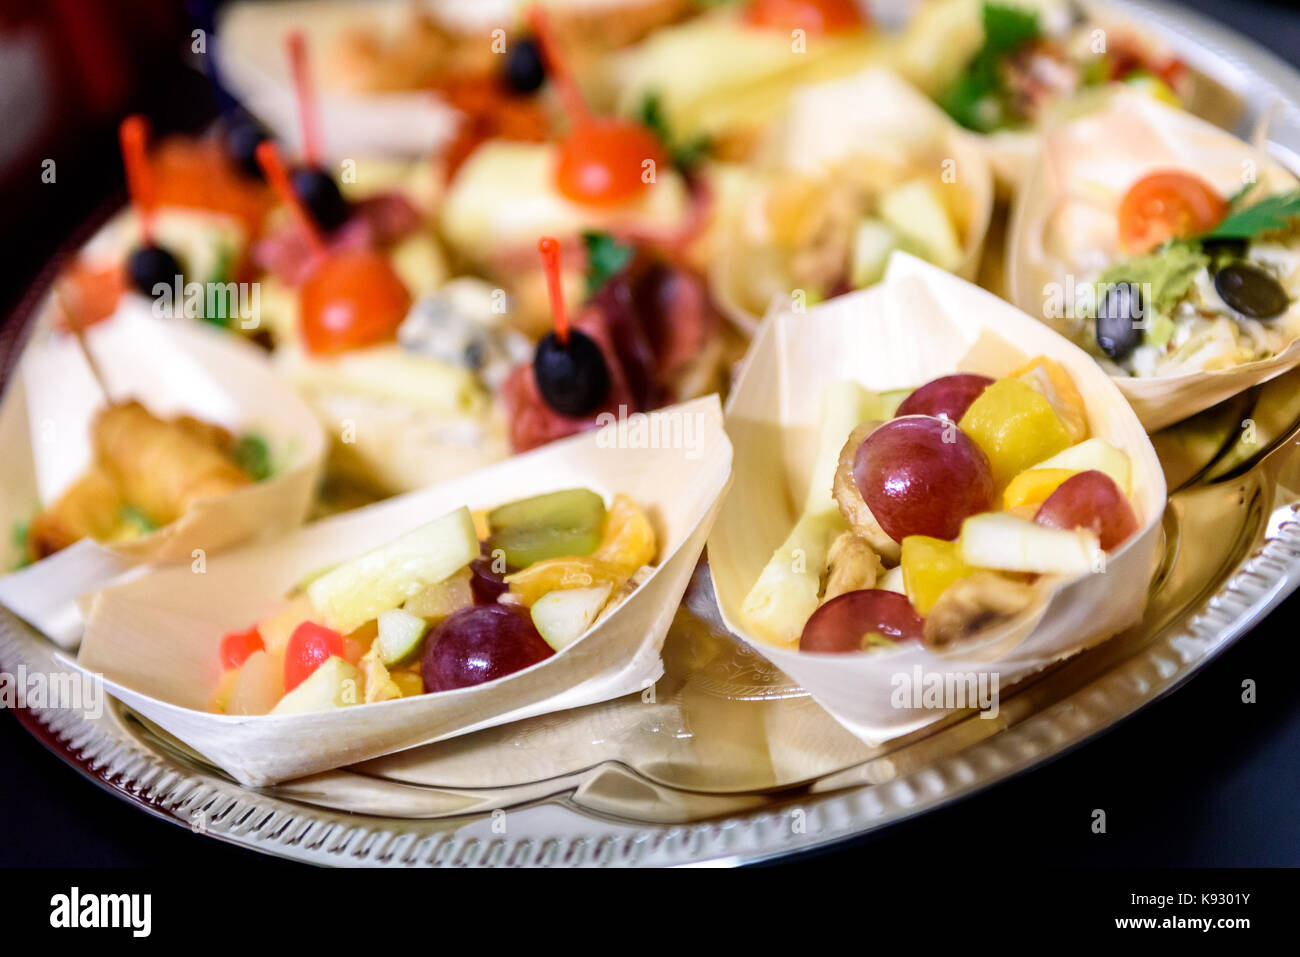 Home made canapes small sandwiches appetizers. Mix of different finger food snacks for a party or banquet on a plate. - Stock Image